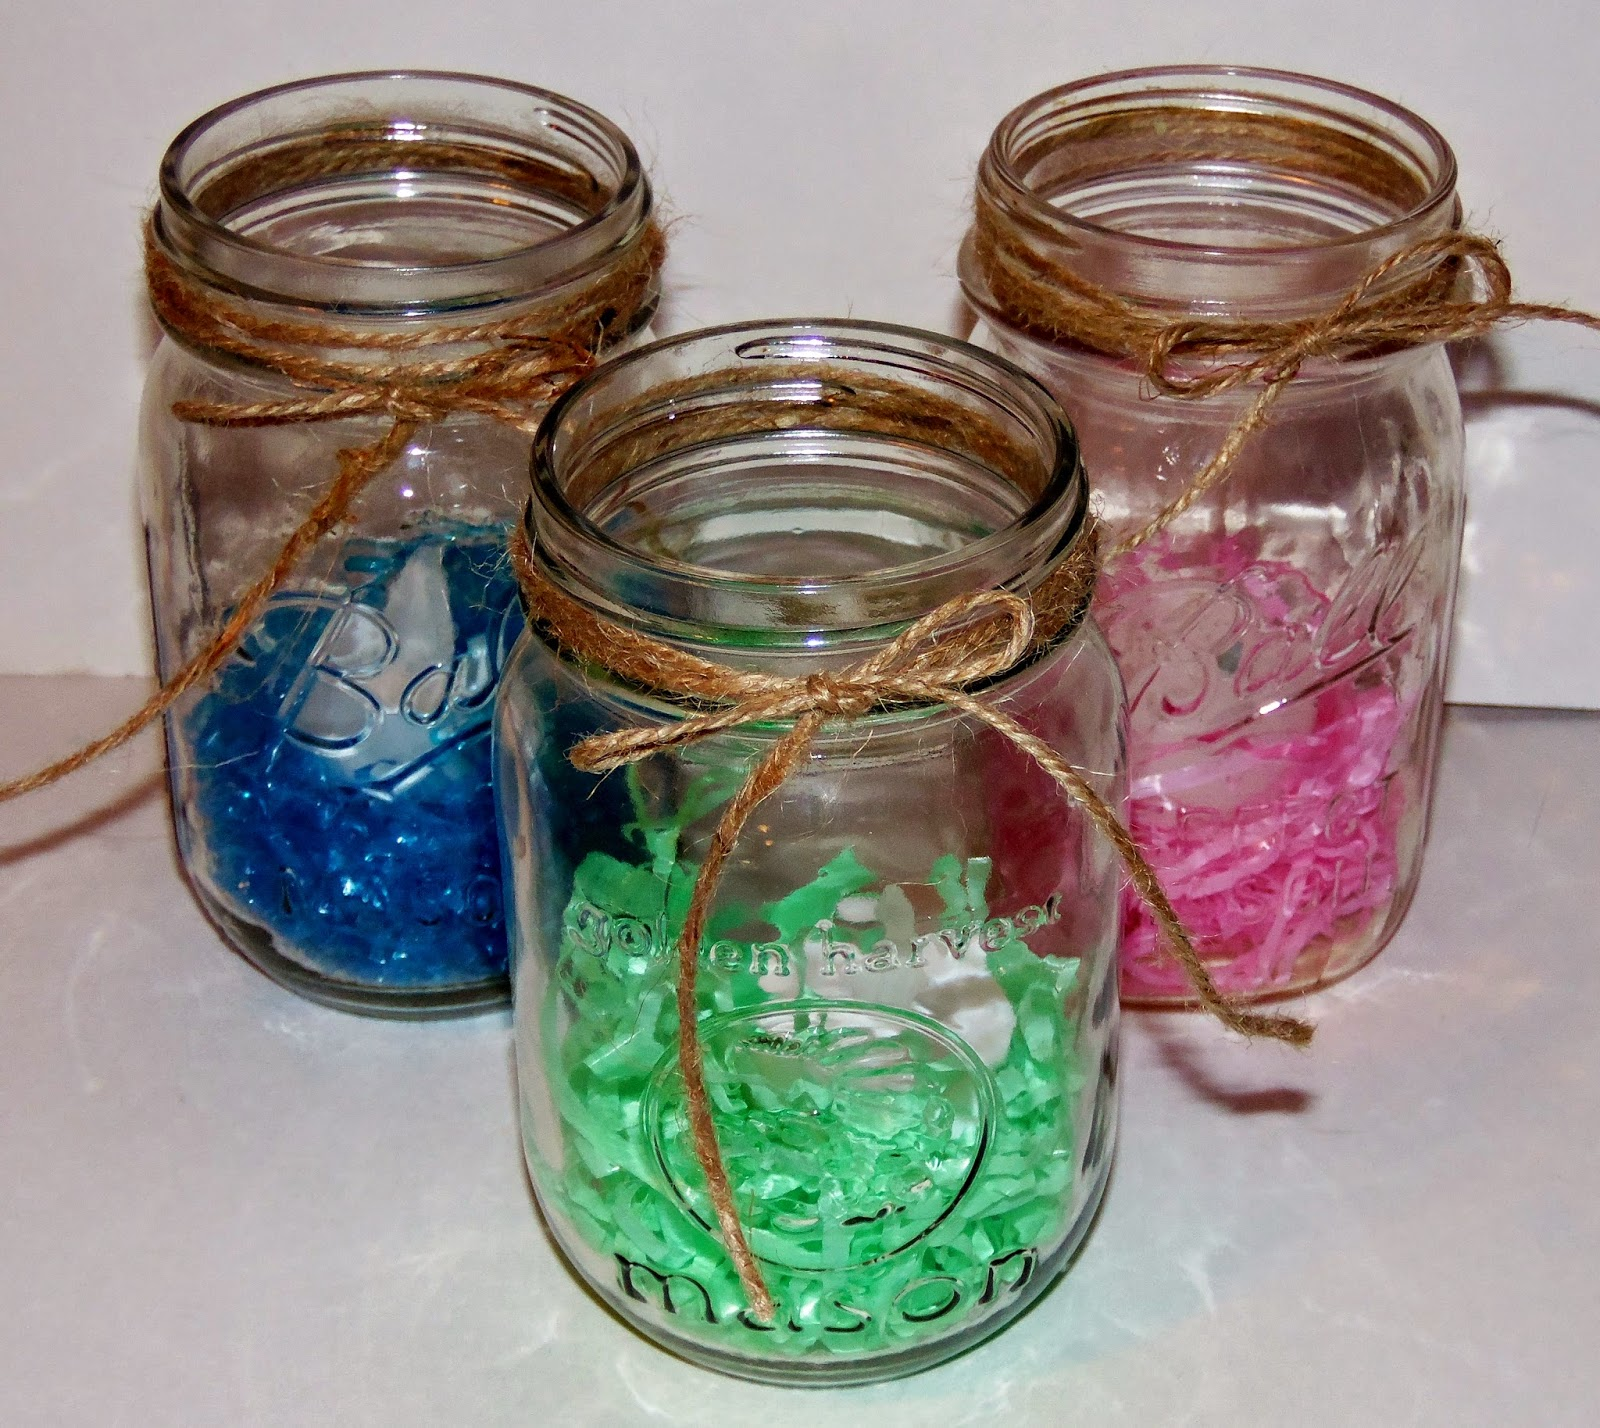 Here Are Three Small Mason Jars With A Bit Of Colored Easter Grass At The Bottom On Top In Each Jar Is An LED Tea Light